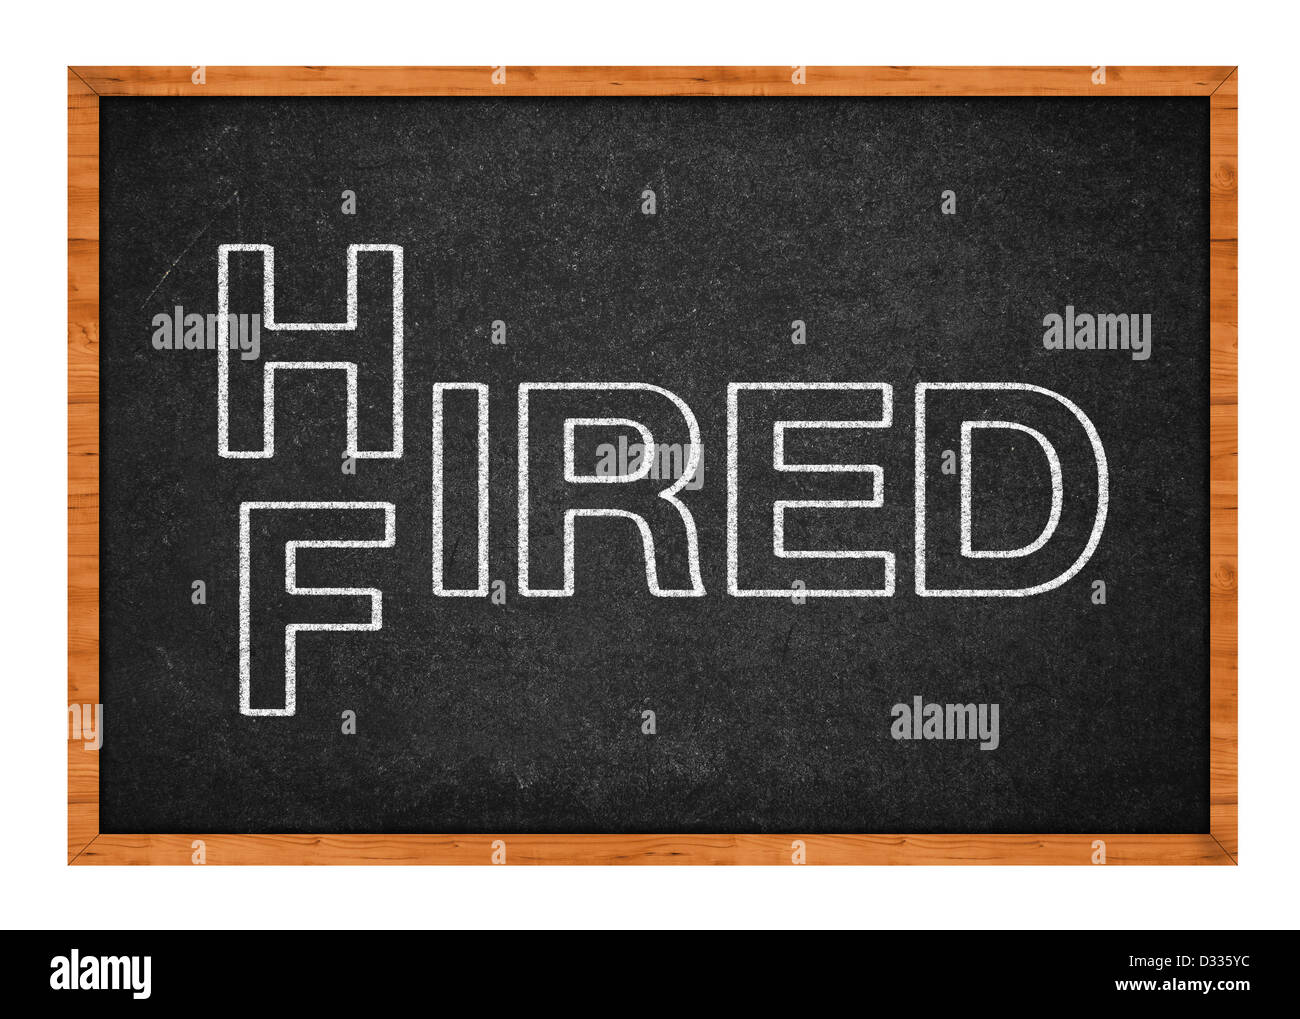 Hired or fired concept, two words handwritten on a chalkboard. - Stock Image